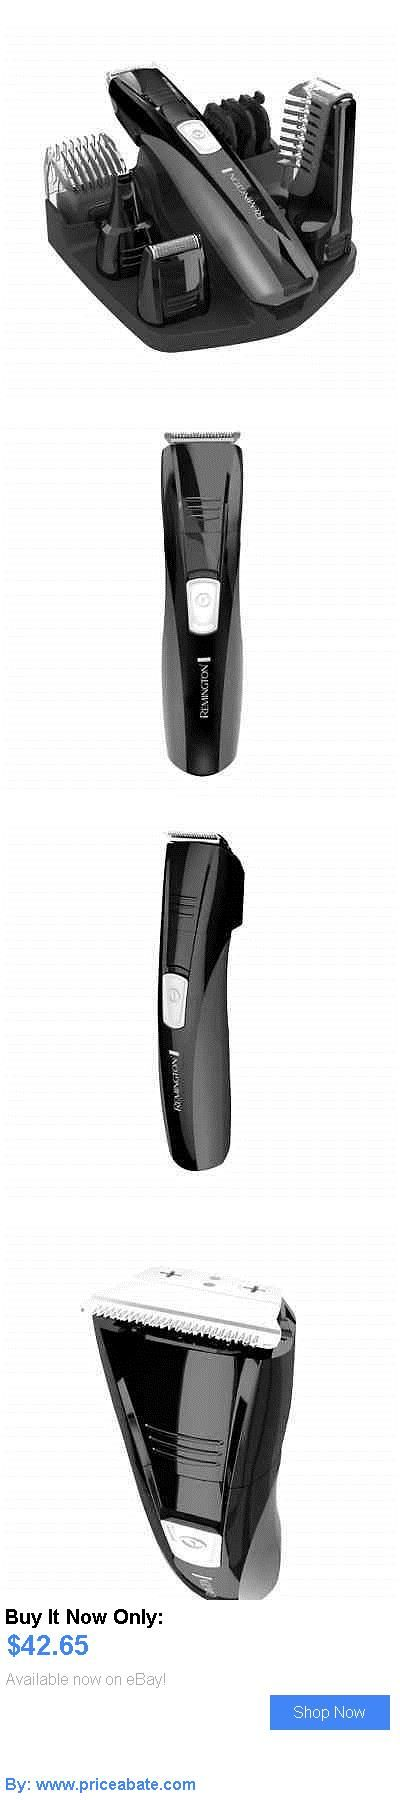 Shaving: New Hair Trimmer Beard Clipper Shaver Men Electric Grooming Rechargeable Kit BUY IT NOW ONLY: $42.65 #priceabateShaving OR #priceabate